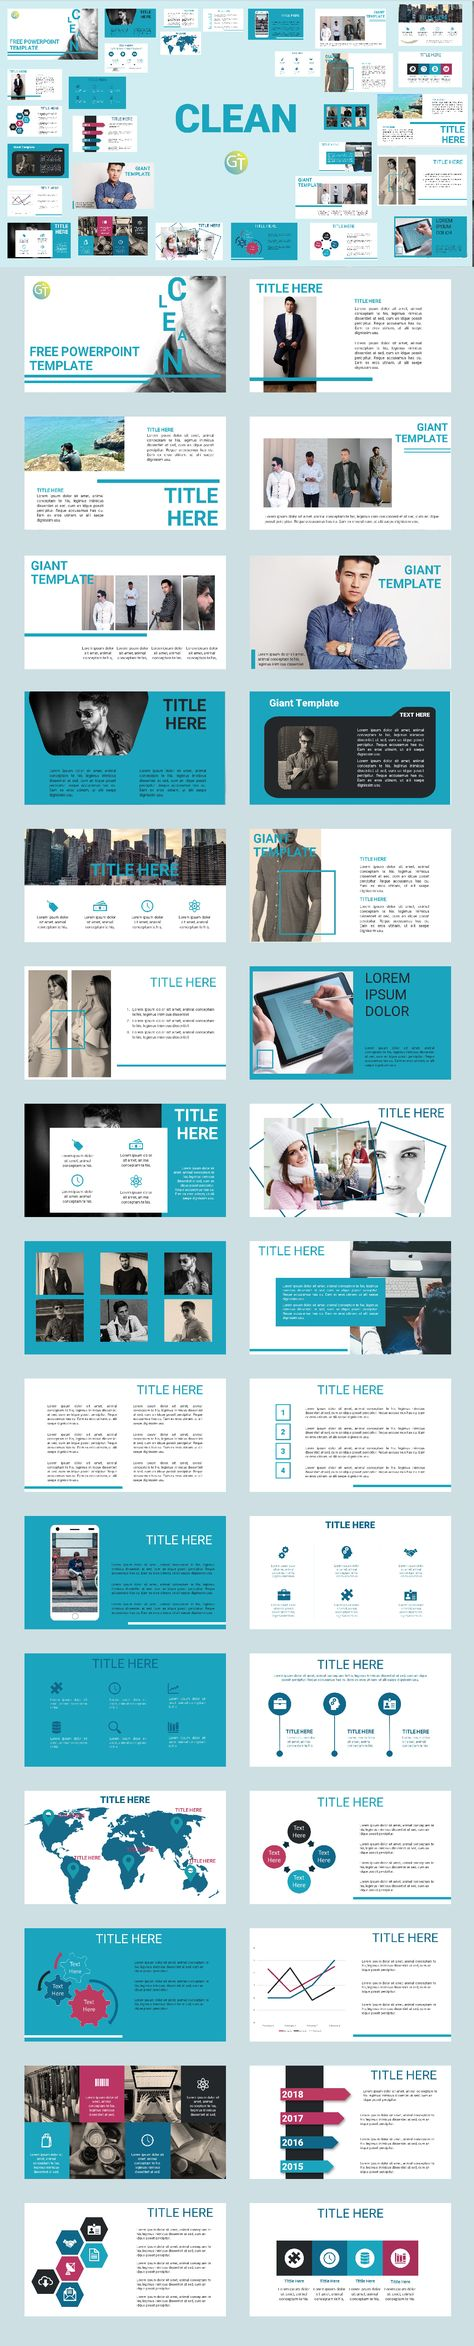 CLEAN POWERPOINT TEMPLATES 2019